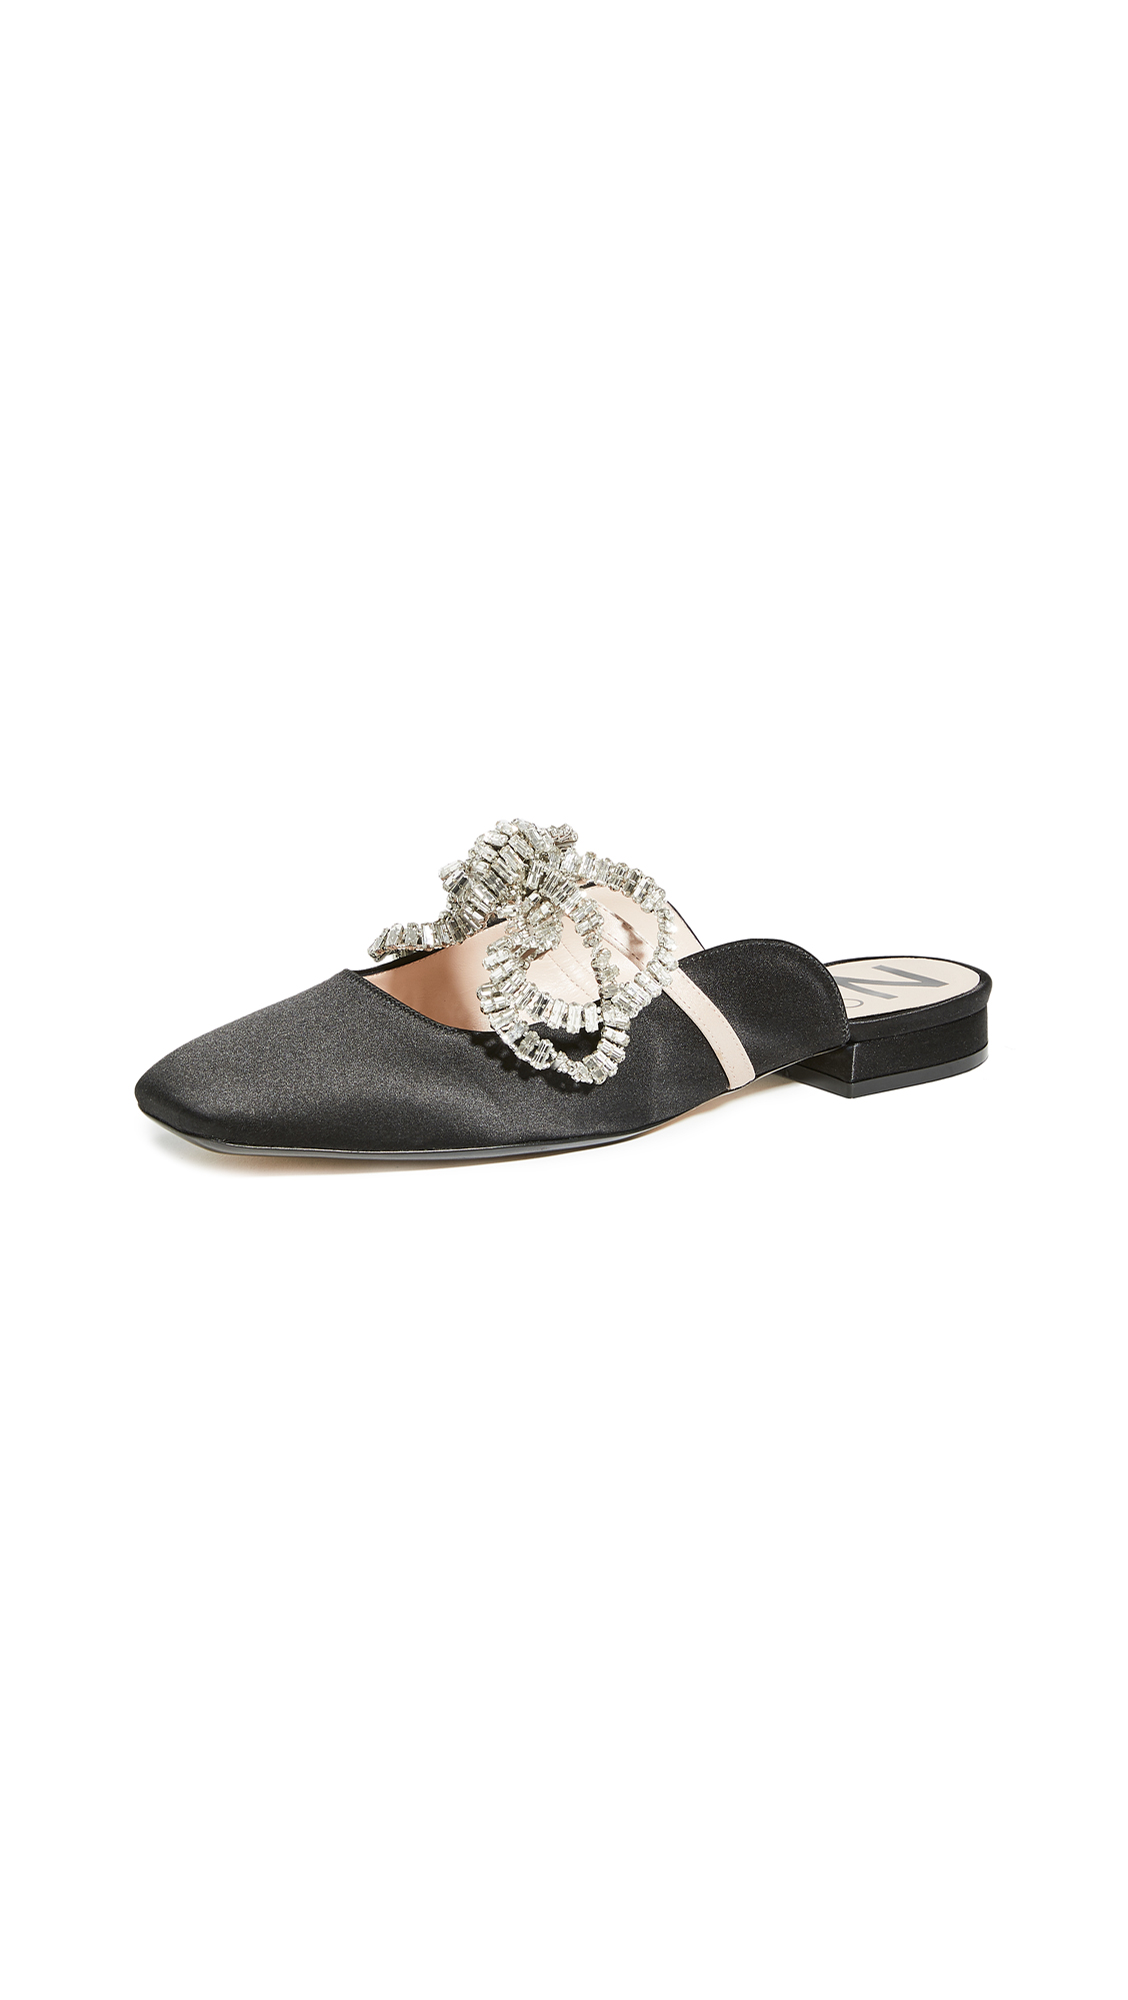 No. 21 Crystal Embroidered Flats – 40% Off Sale